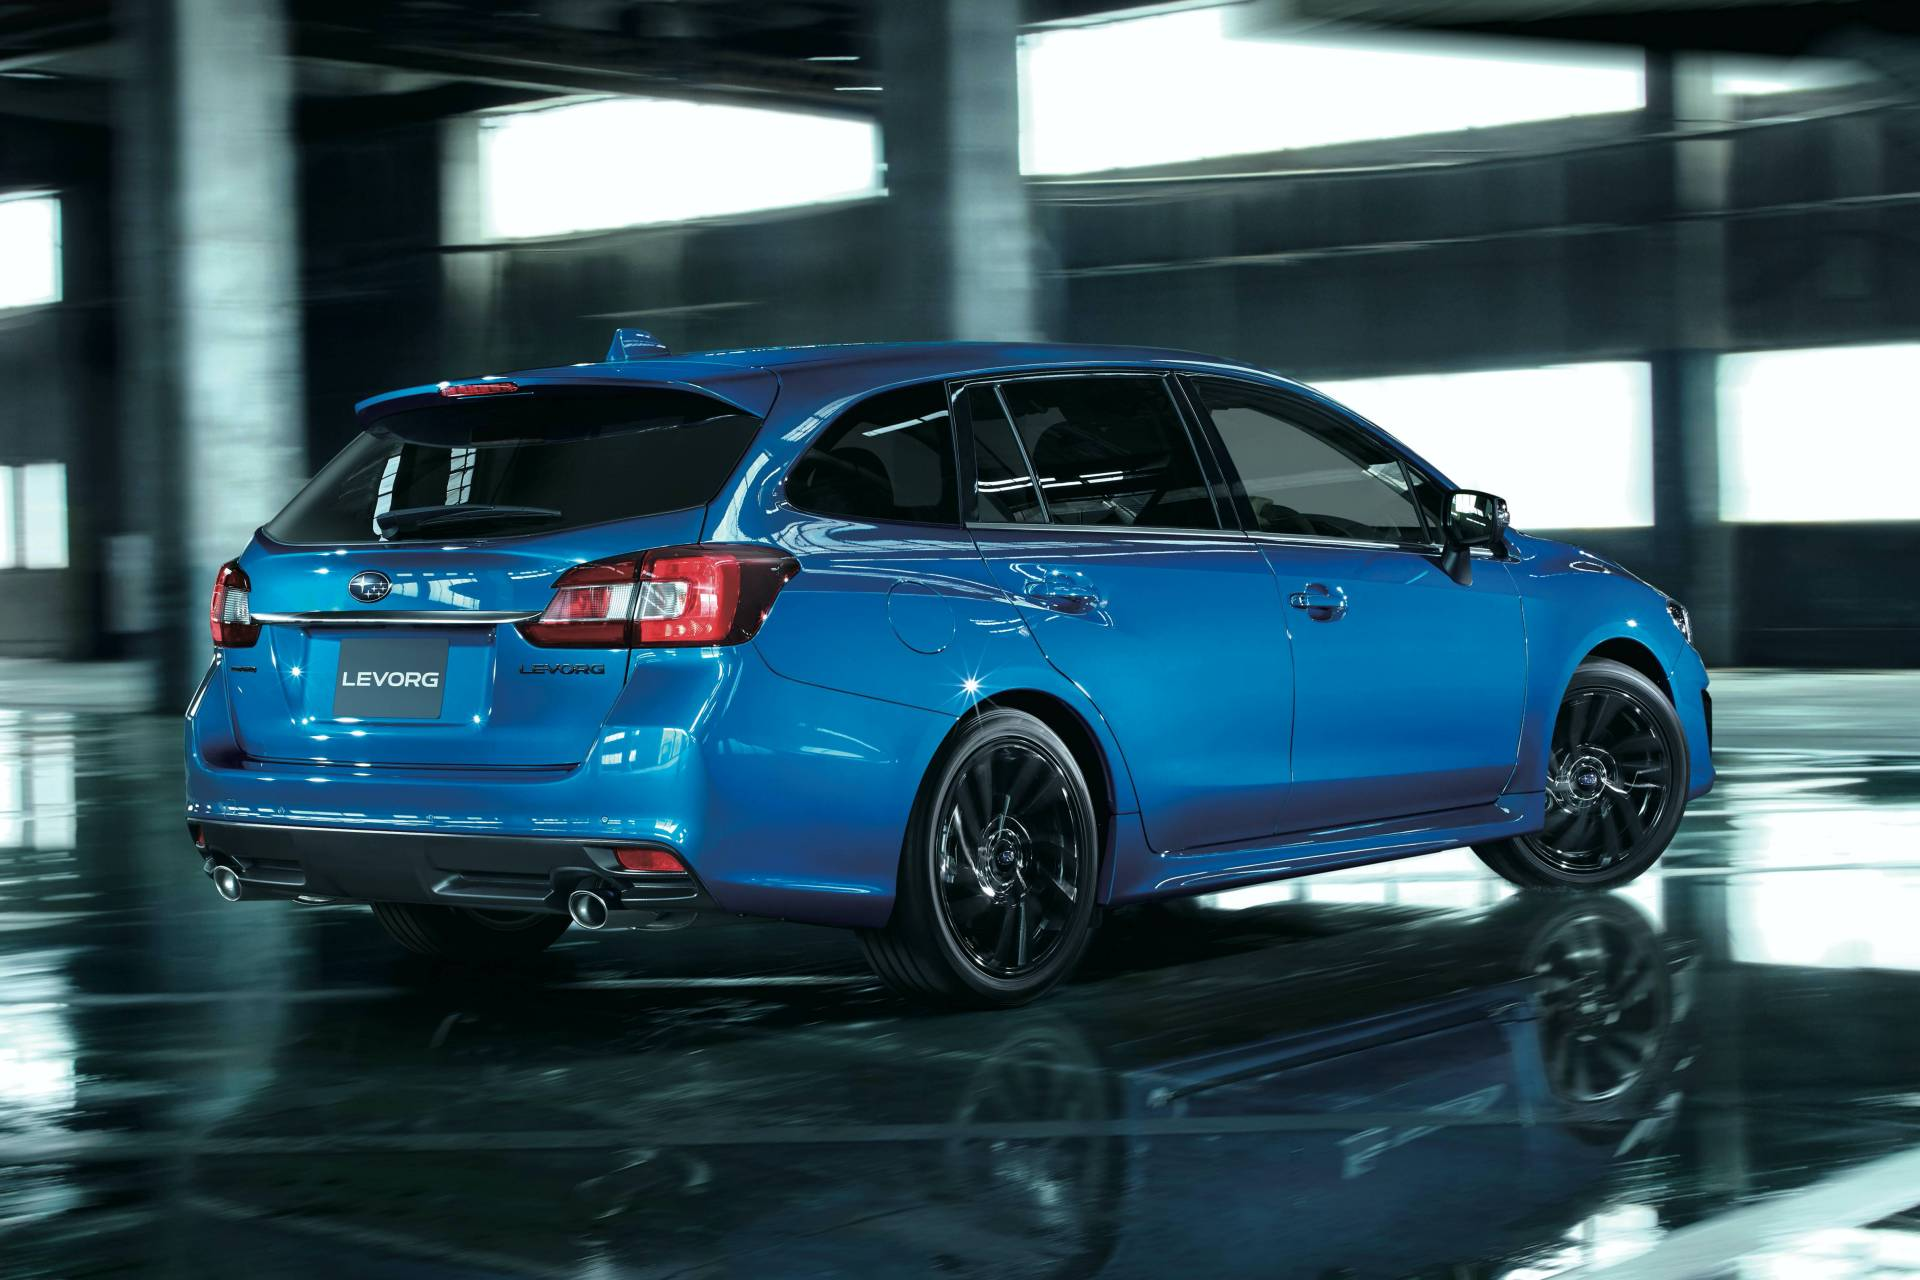 Subaru-Levorg-2.0GT-EyeSight-V-Sport-4